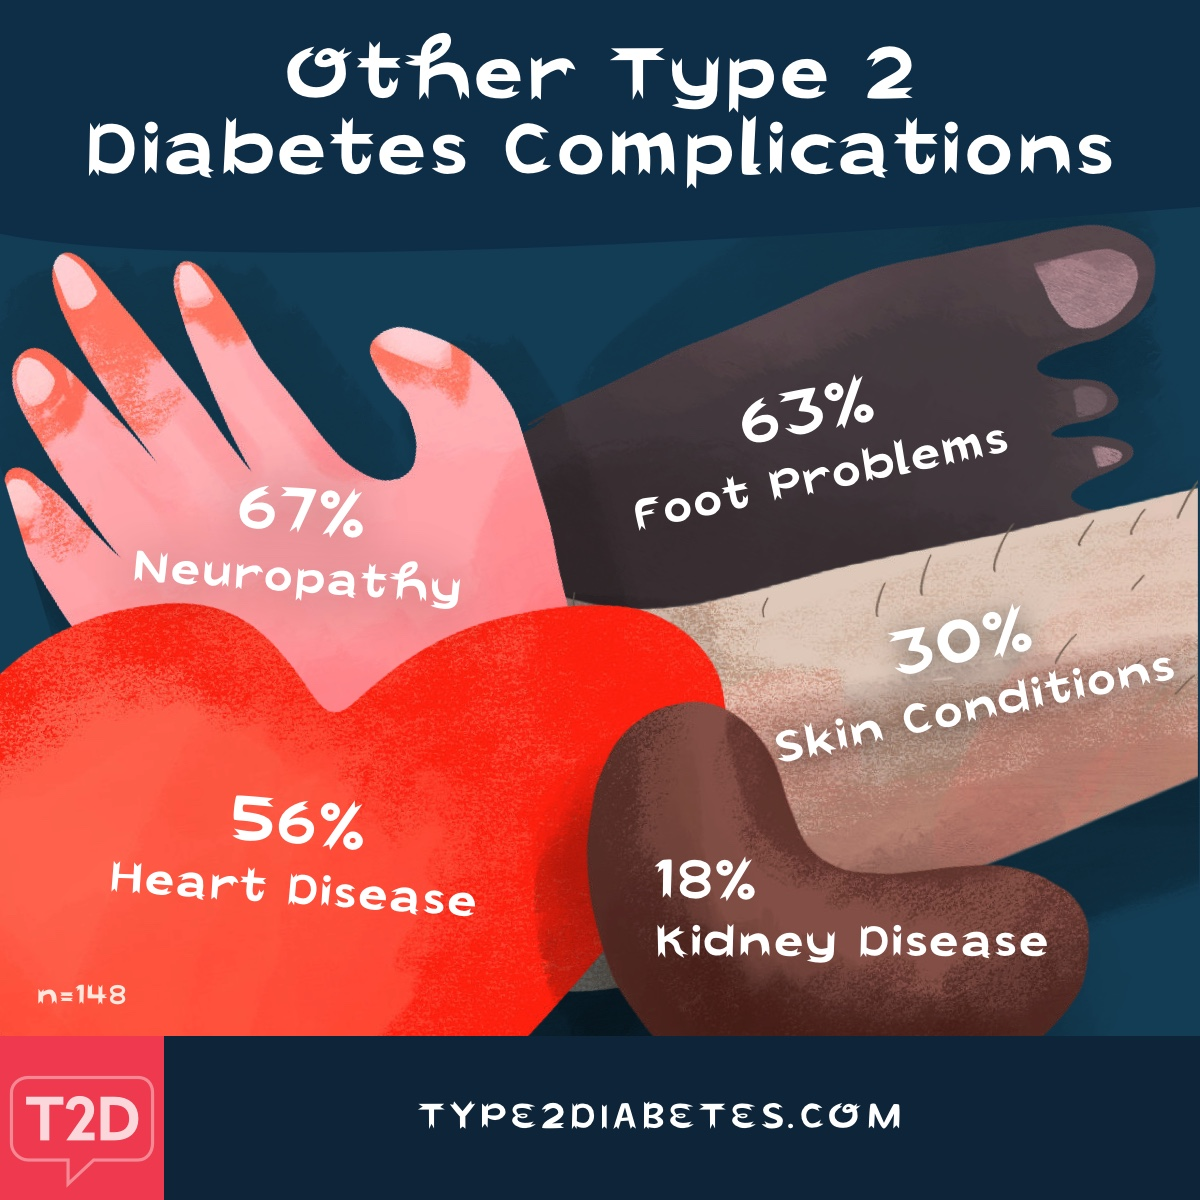 Other type 2 diabetes complications include but are not limited to, neuropathy, foot problems and heart disease